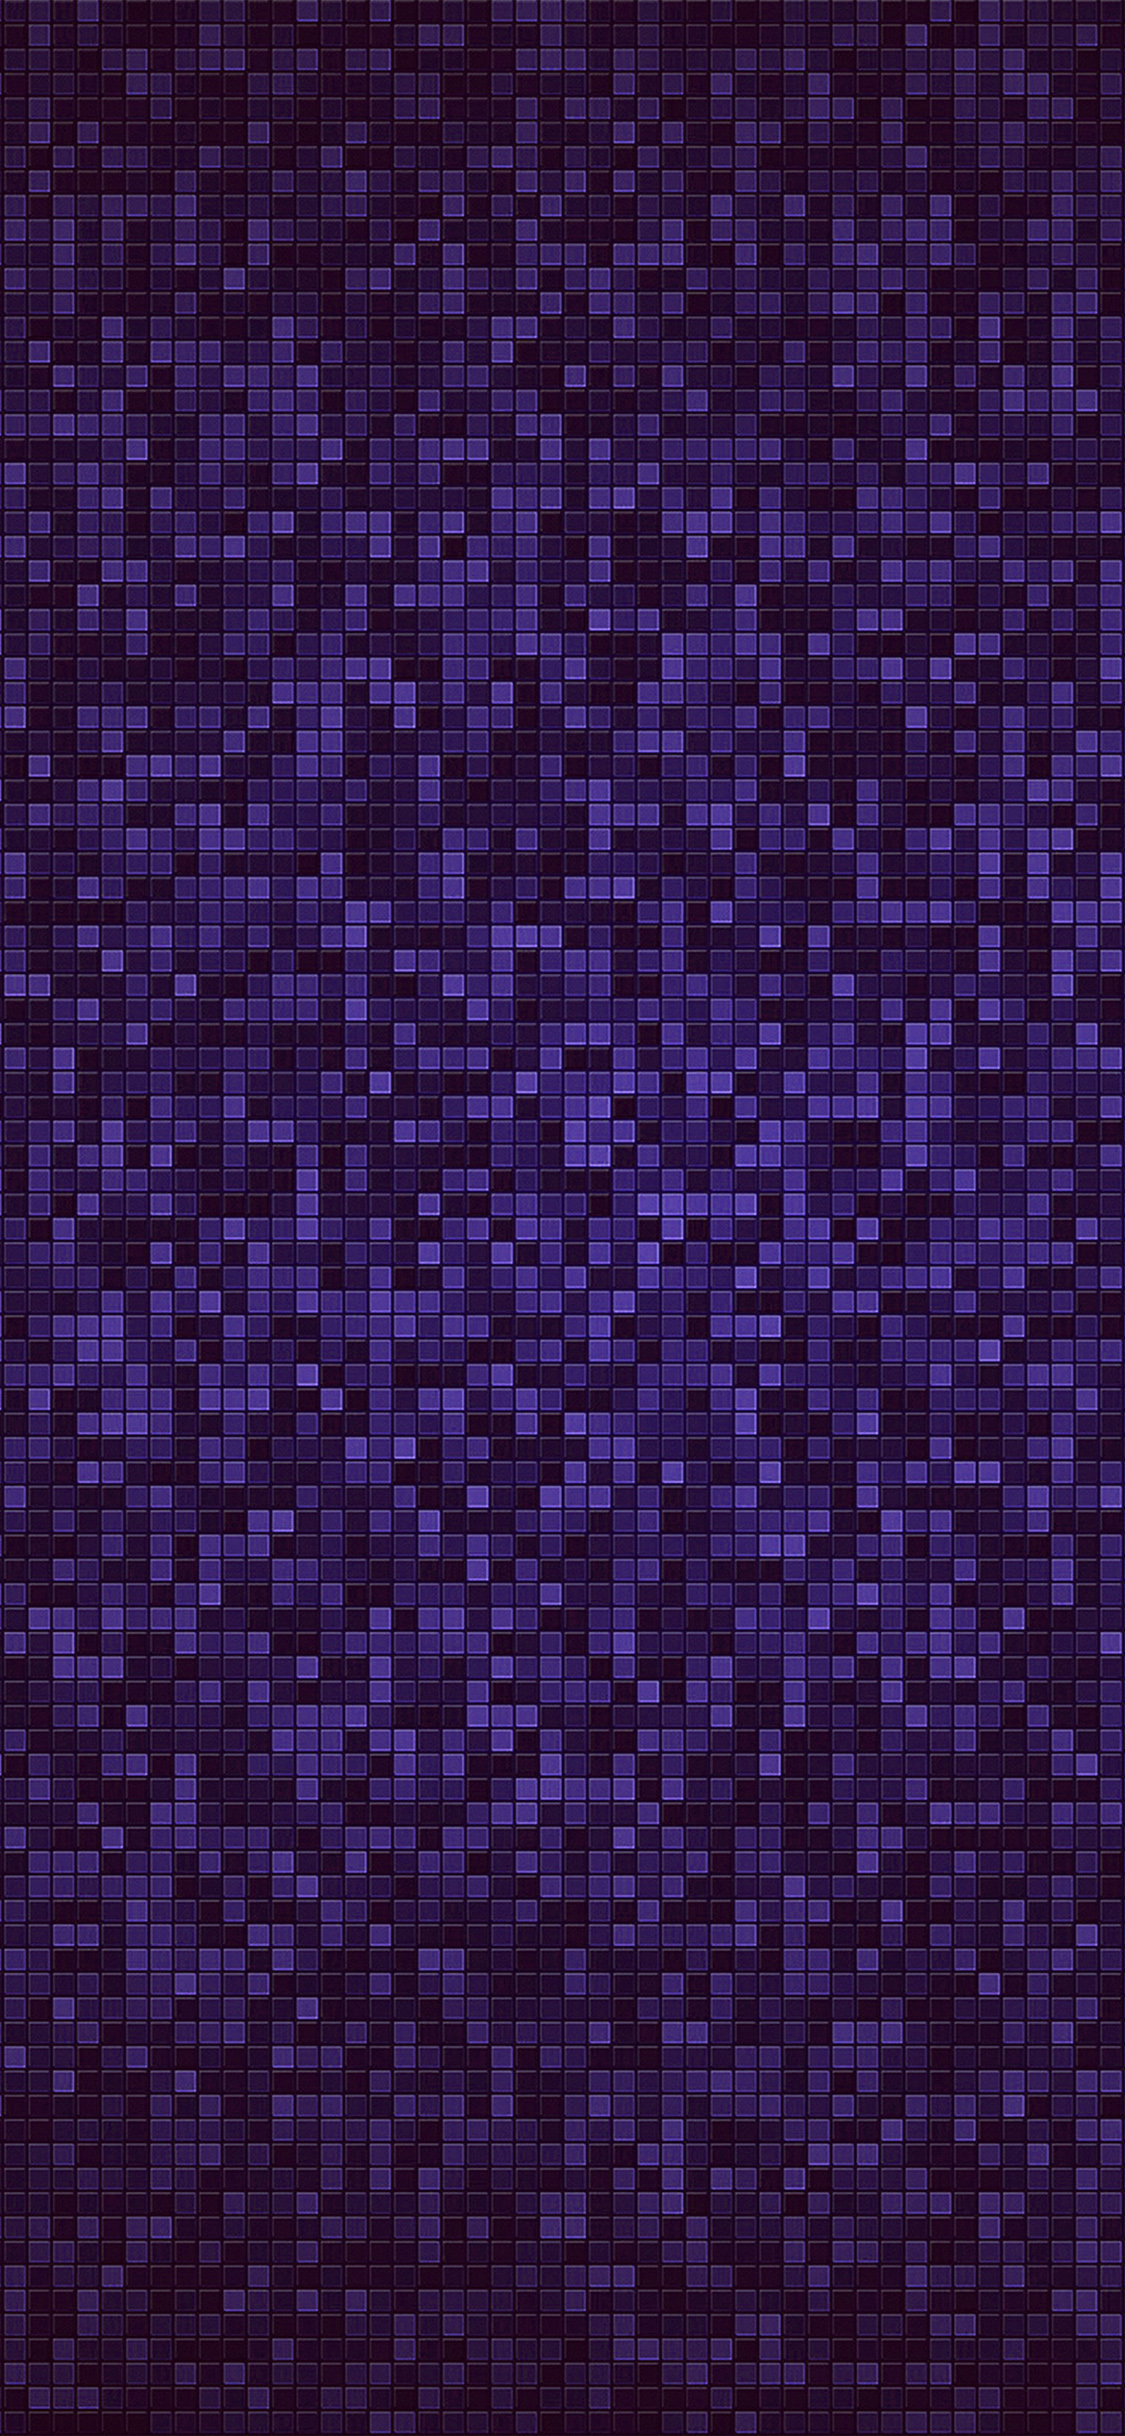 Papers Co Iphone Wallpaper Vv27 Grid Purple Mosaic